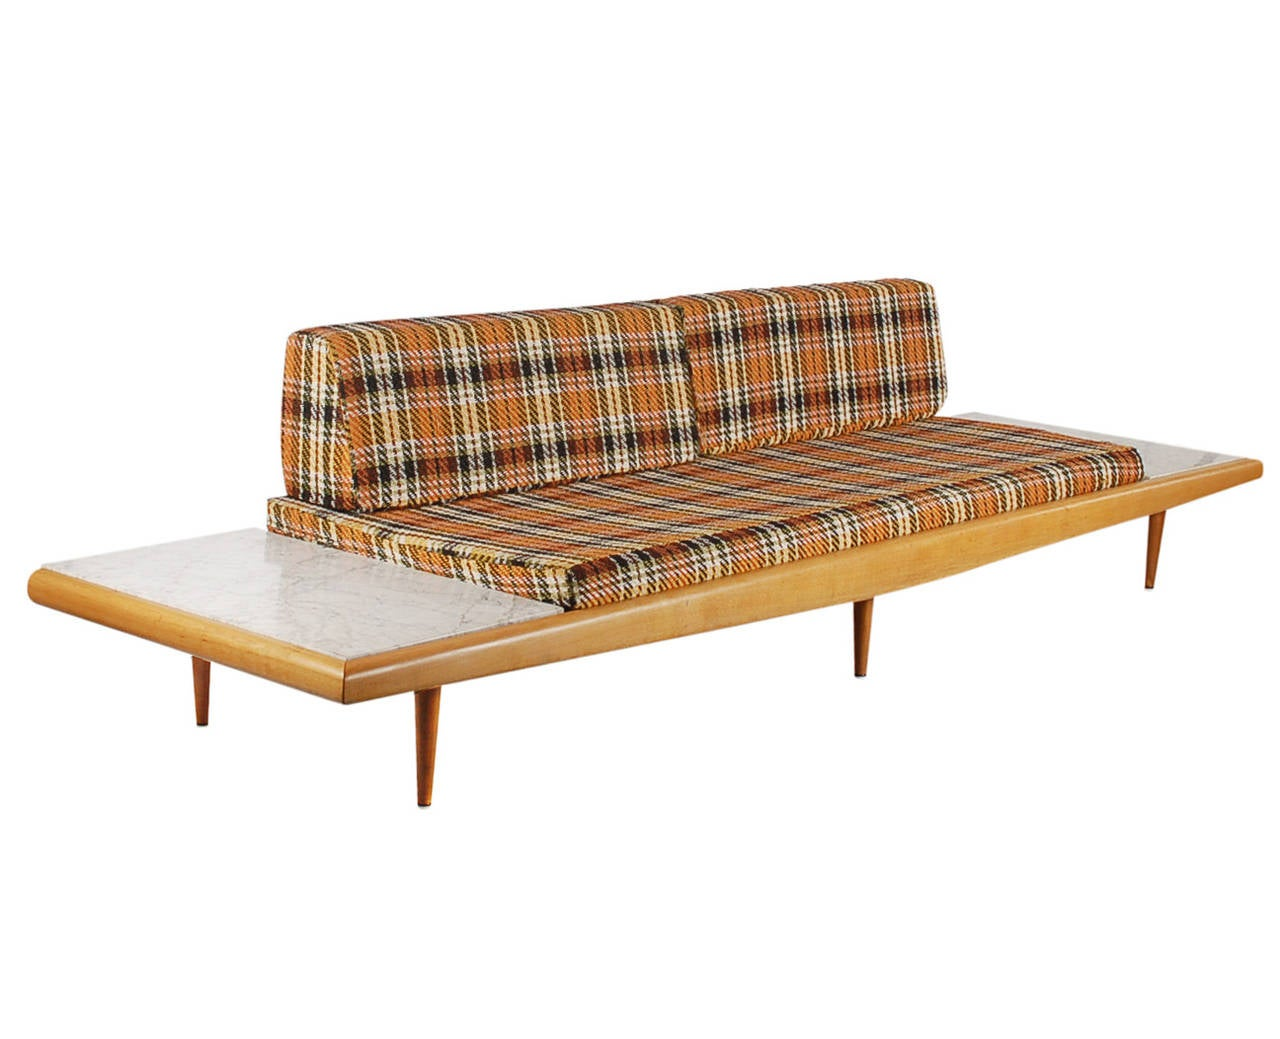 Adrian pearsall sofa with marble end tables at 1stdibs for Sofa end tables